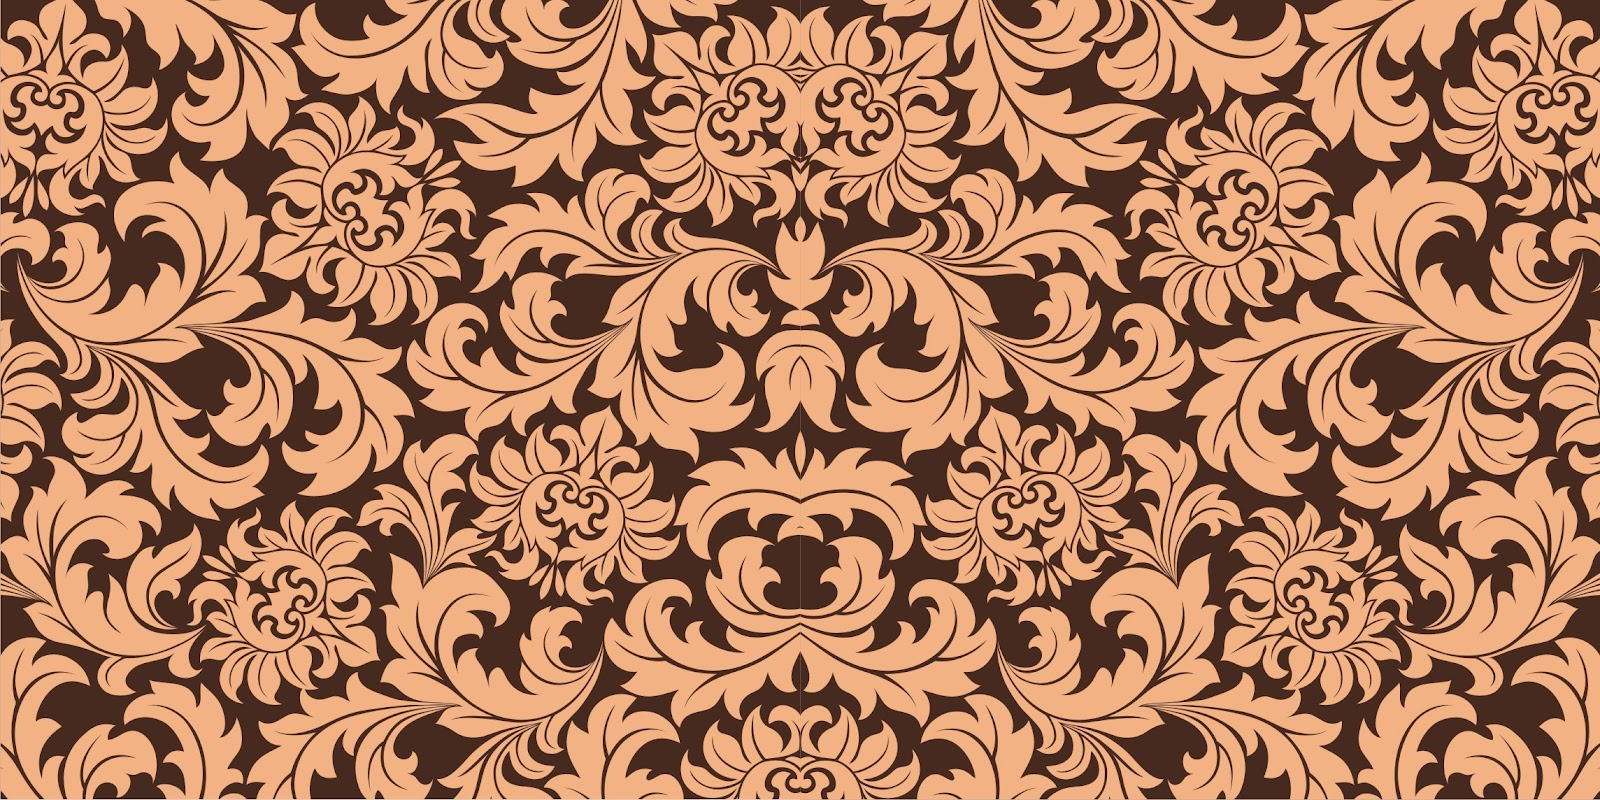 Batik Vector | Joy Studio Design Gallery - Best Design